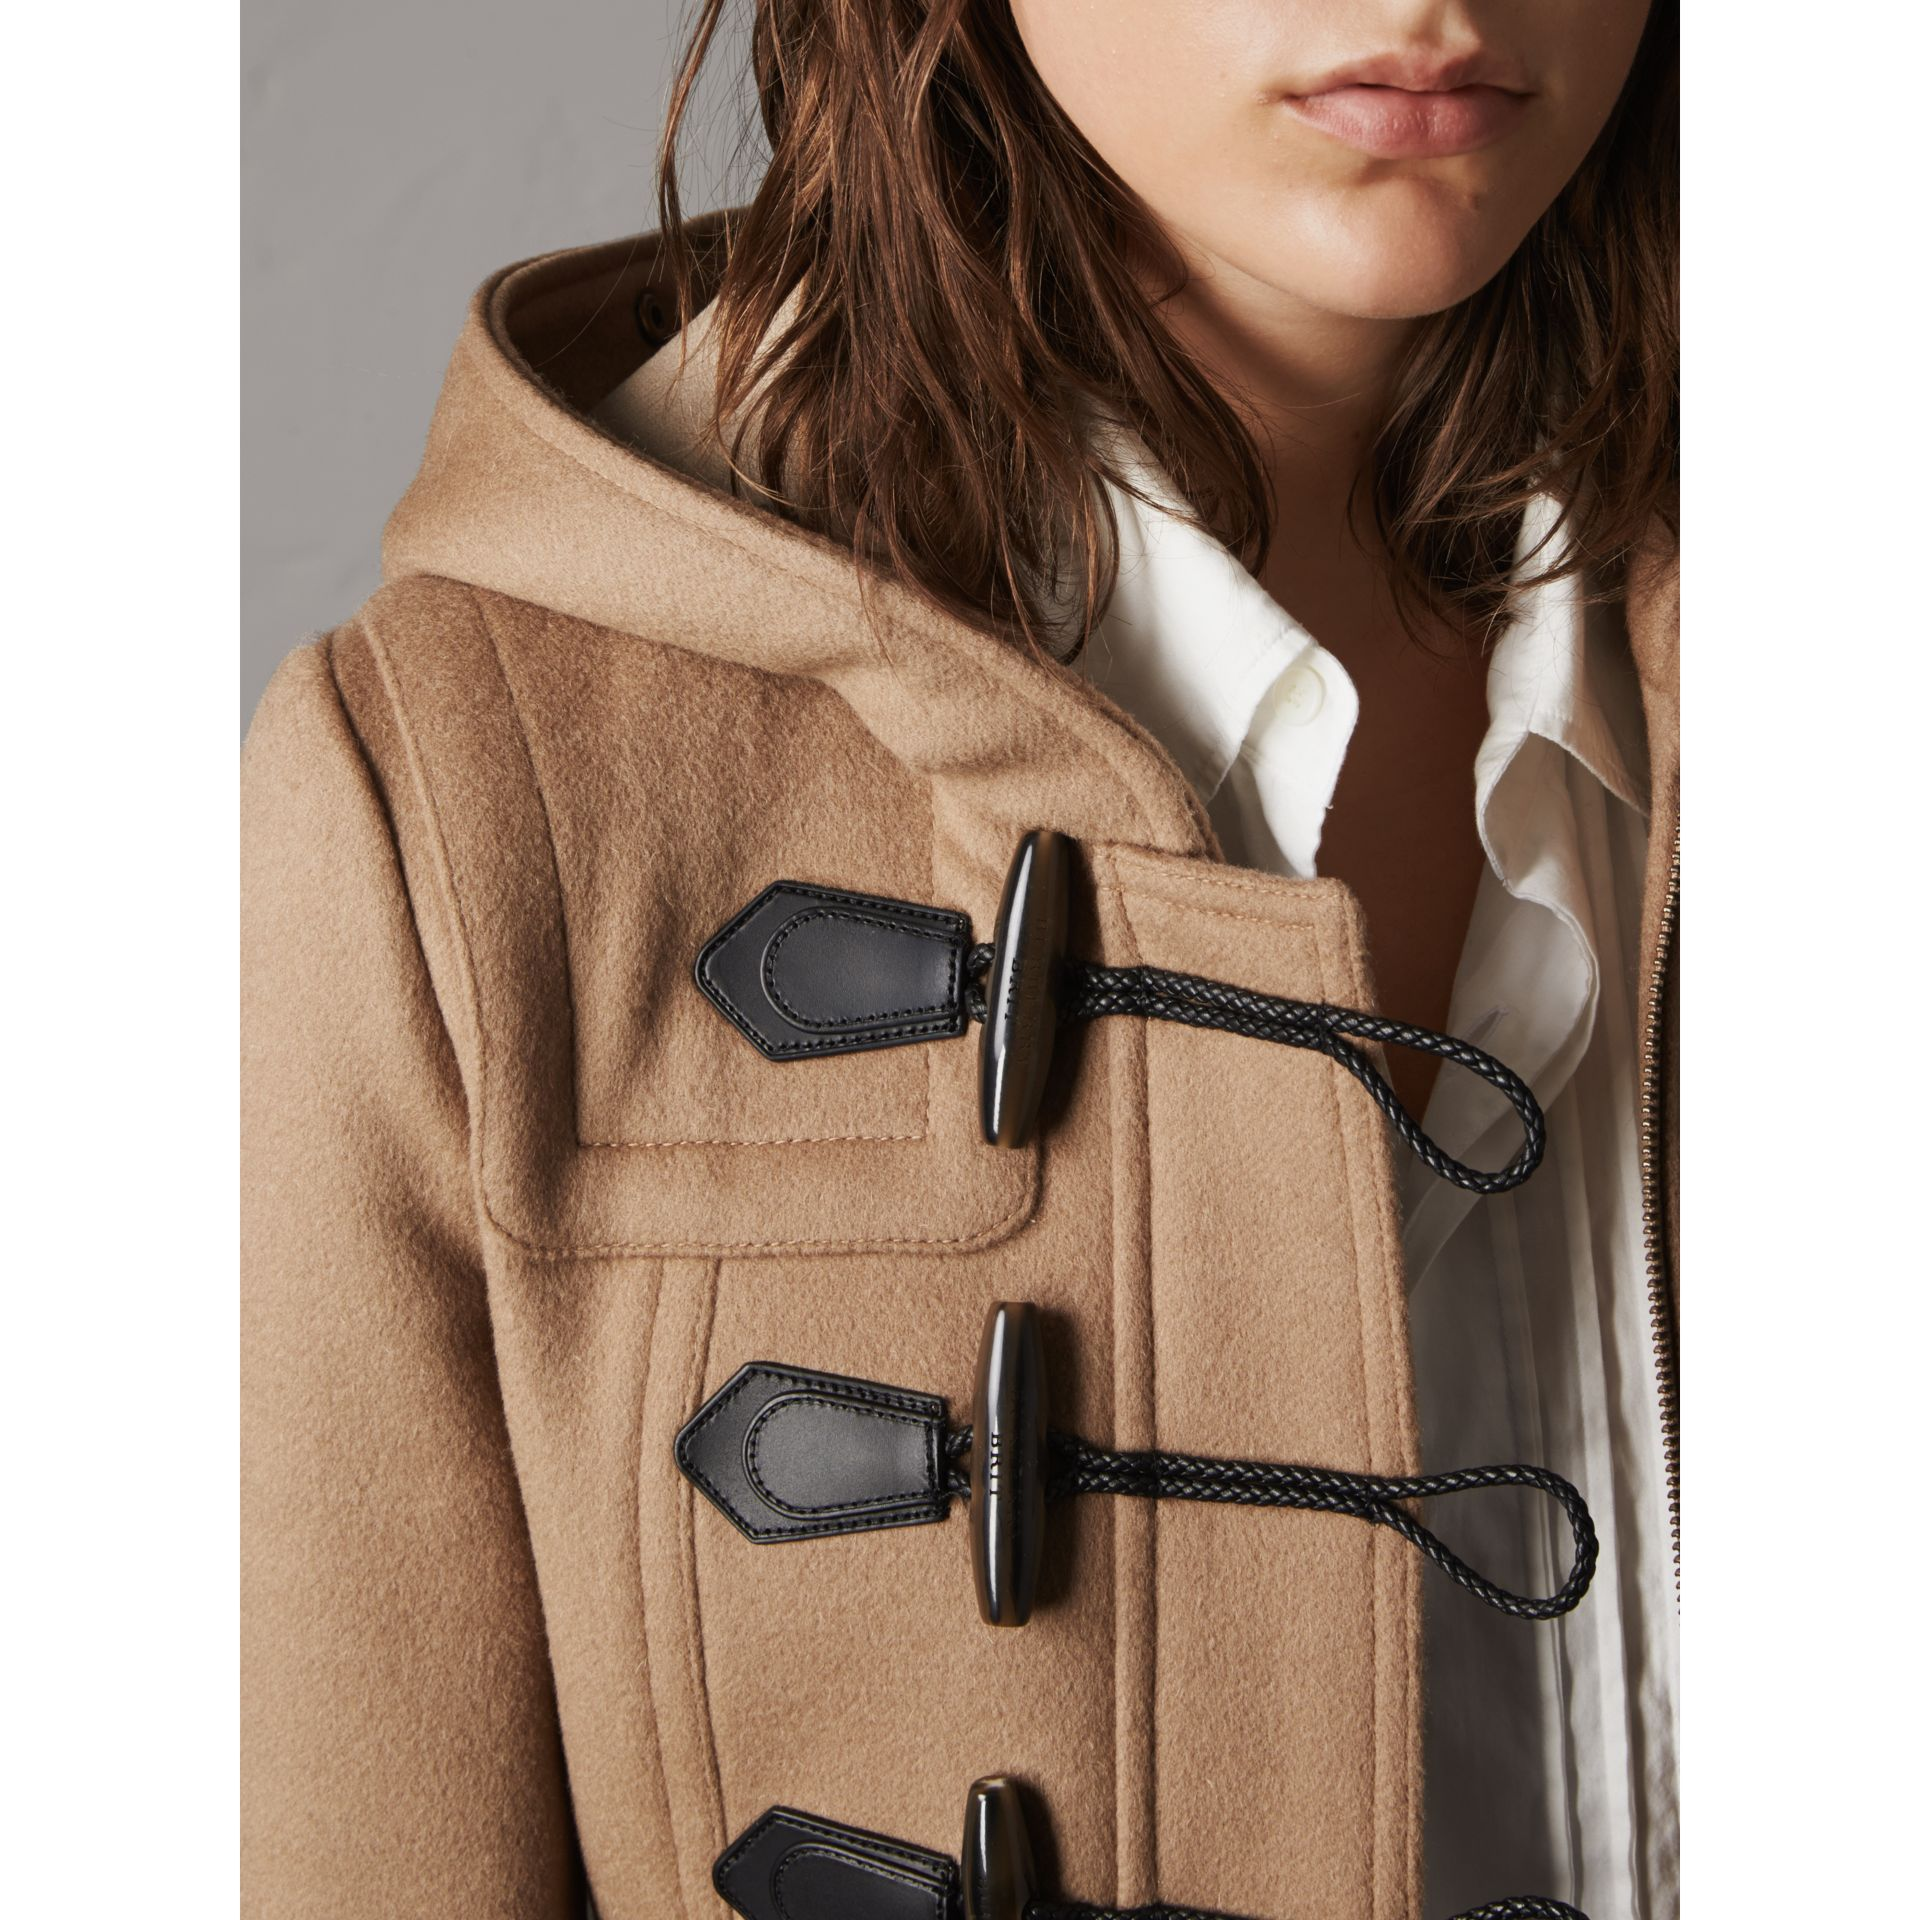 Duffle-coat en laine avec bordure en fourrure amovible (Camel) - Femme | Burberry - photo de la galerie 4